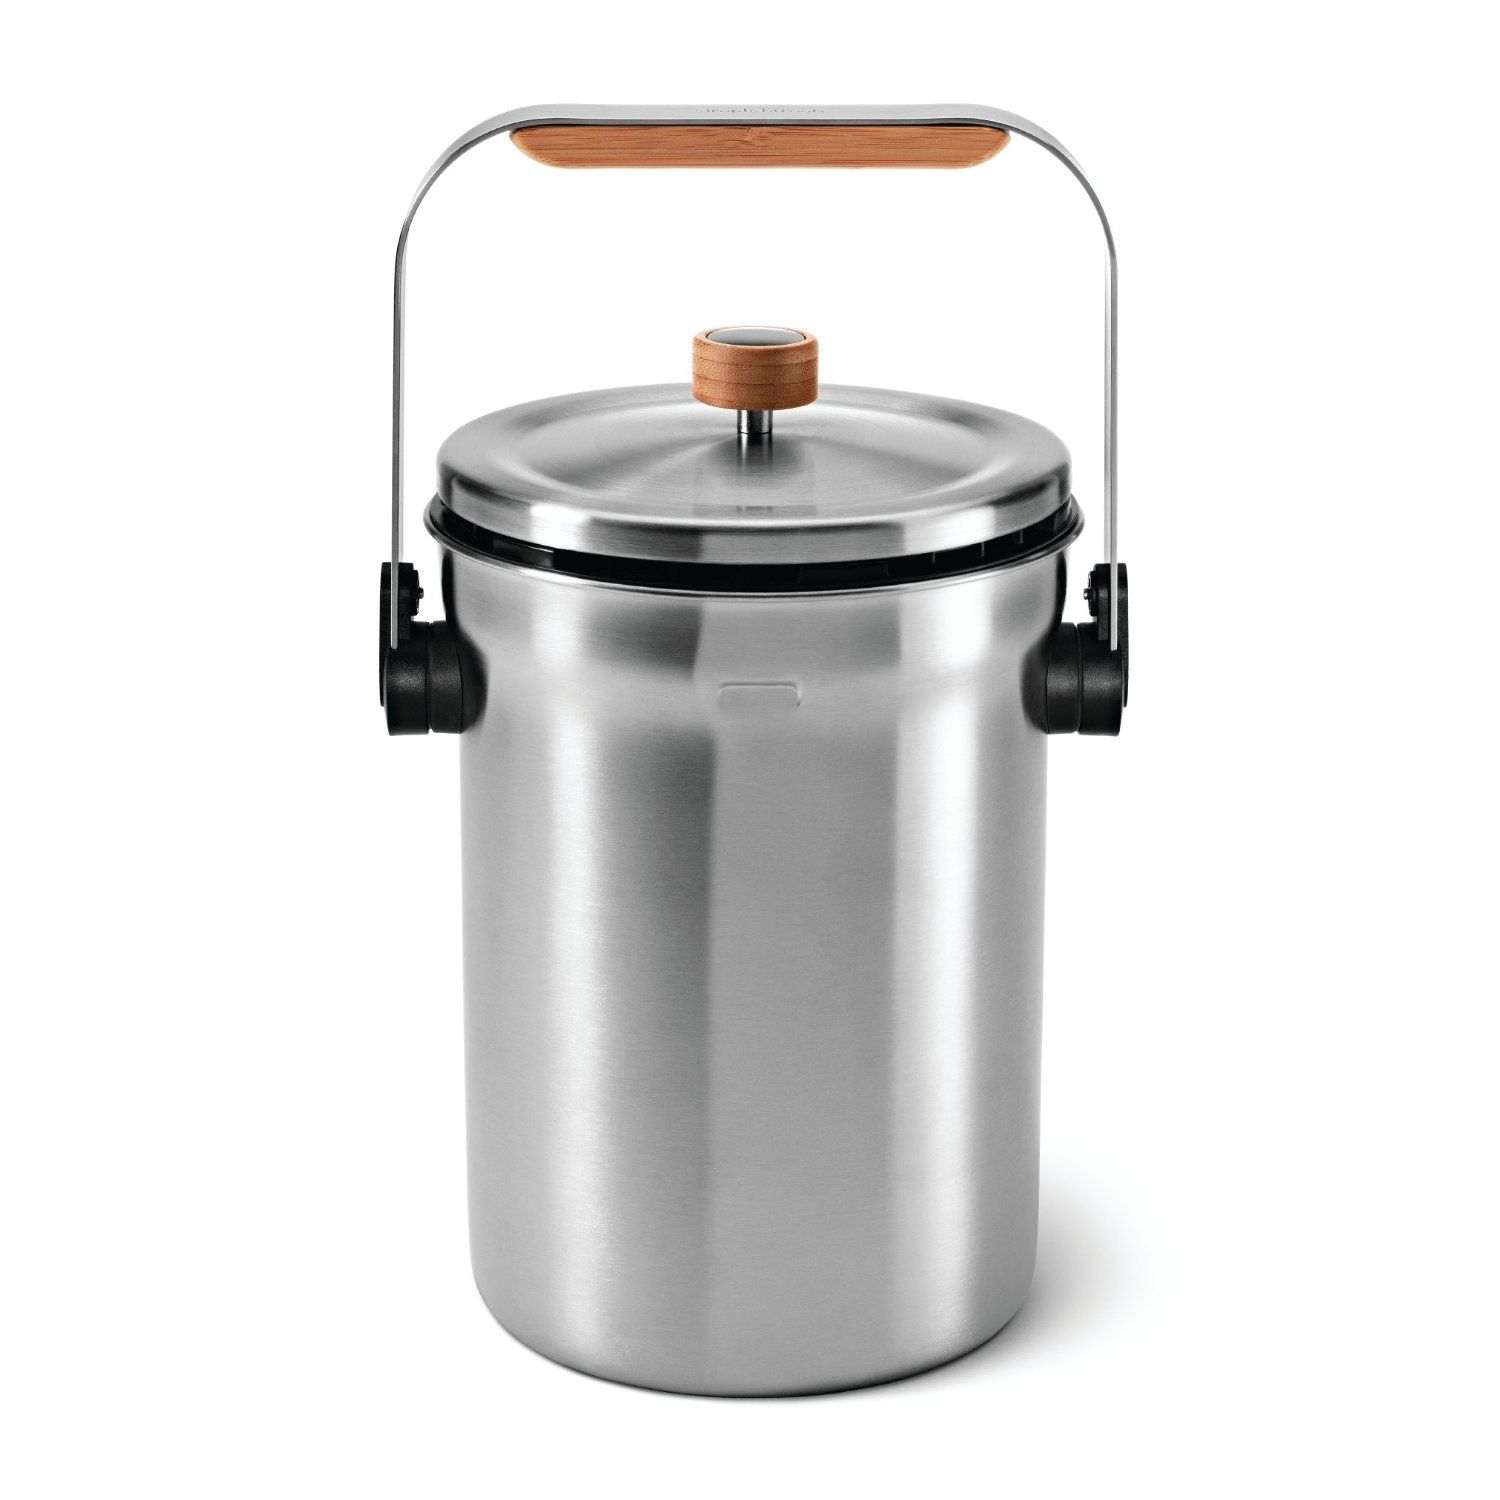 Simplehuman Compost Pail On Amazon 59 99 Can T Wait To Retire The Old Plastic Bin We Ve Been Using For Our Compost Pail Kitchen Trash Cans Compost Bucket